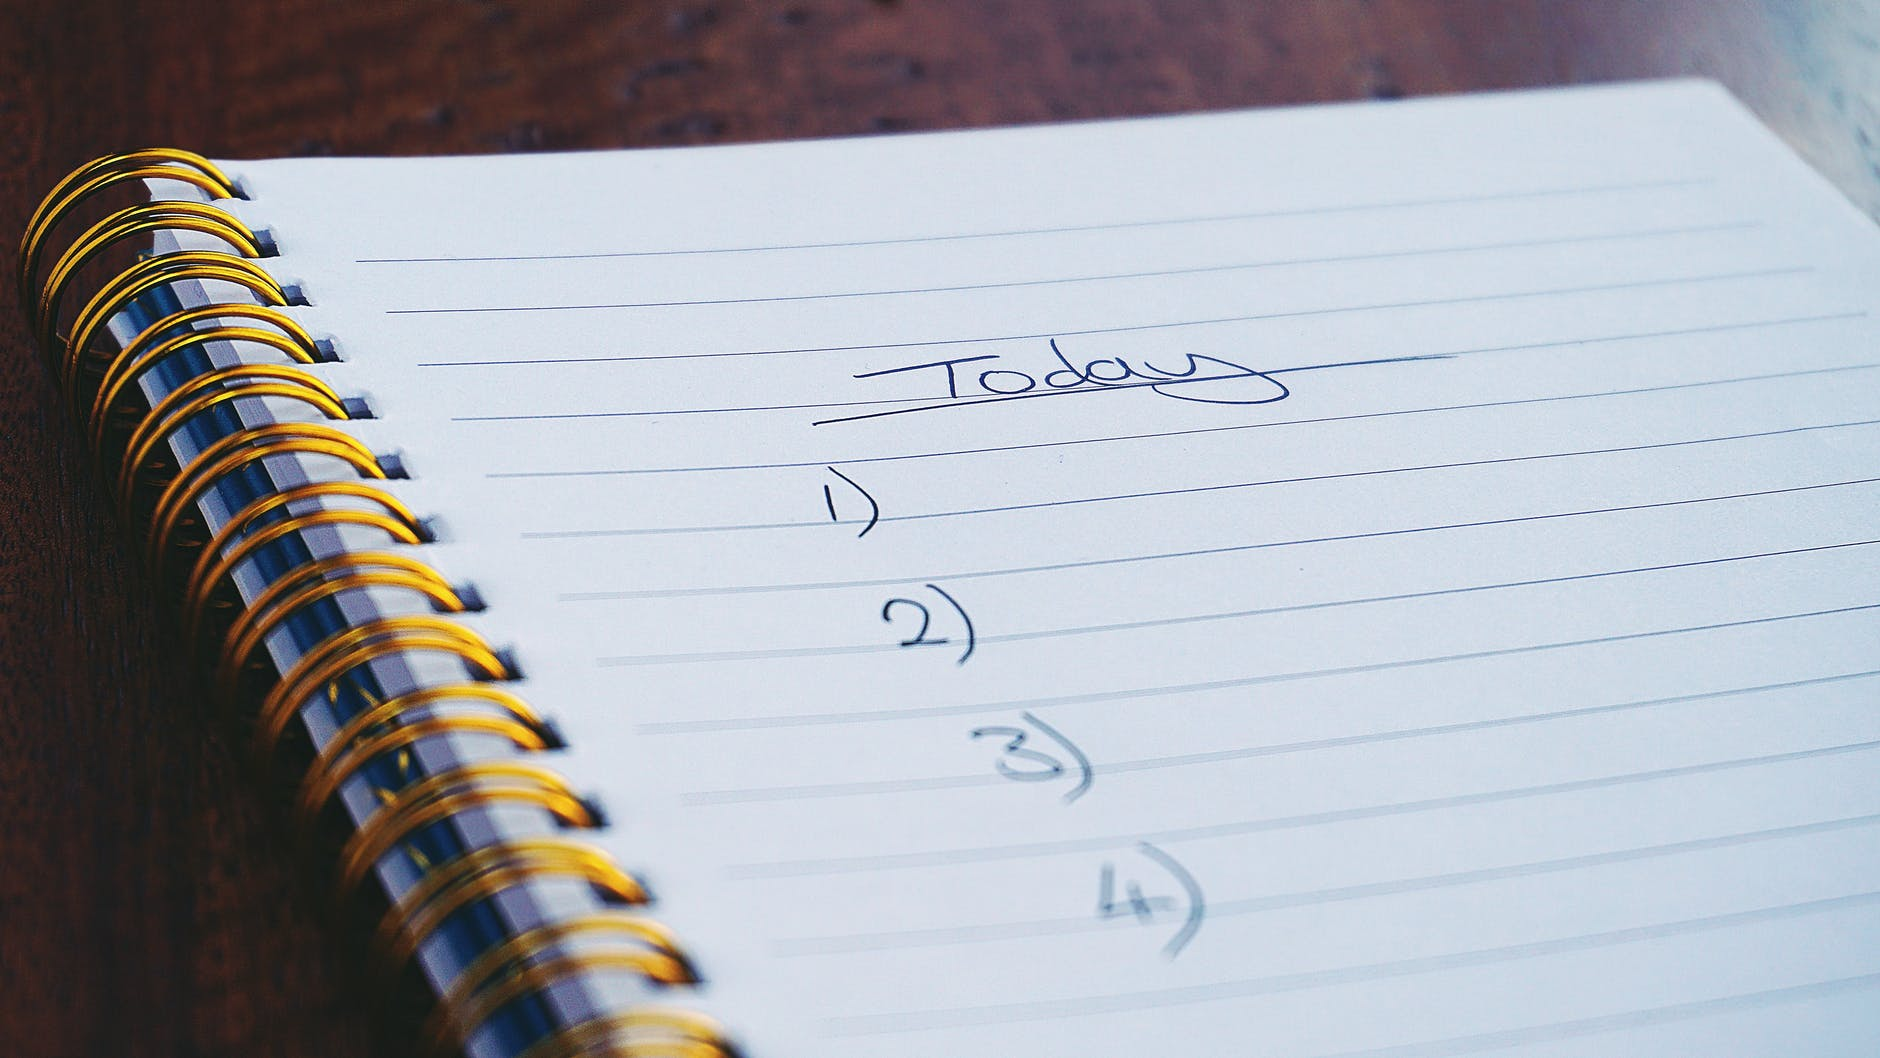 """A notebook is open on a page reading """"Today..."""" and a list of numbers."""